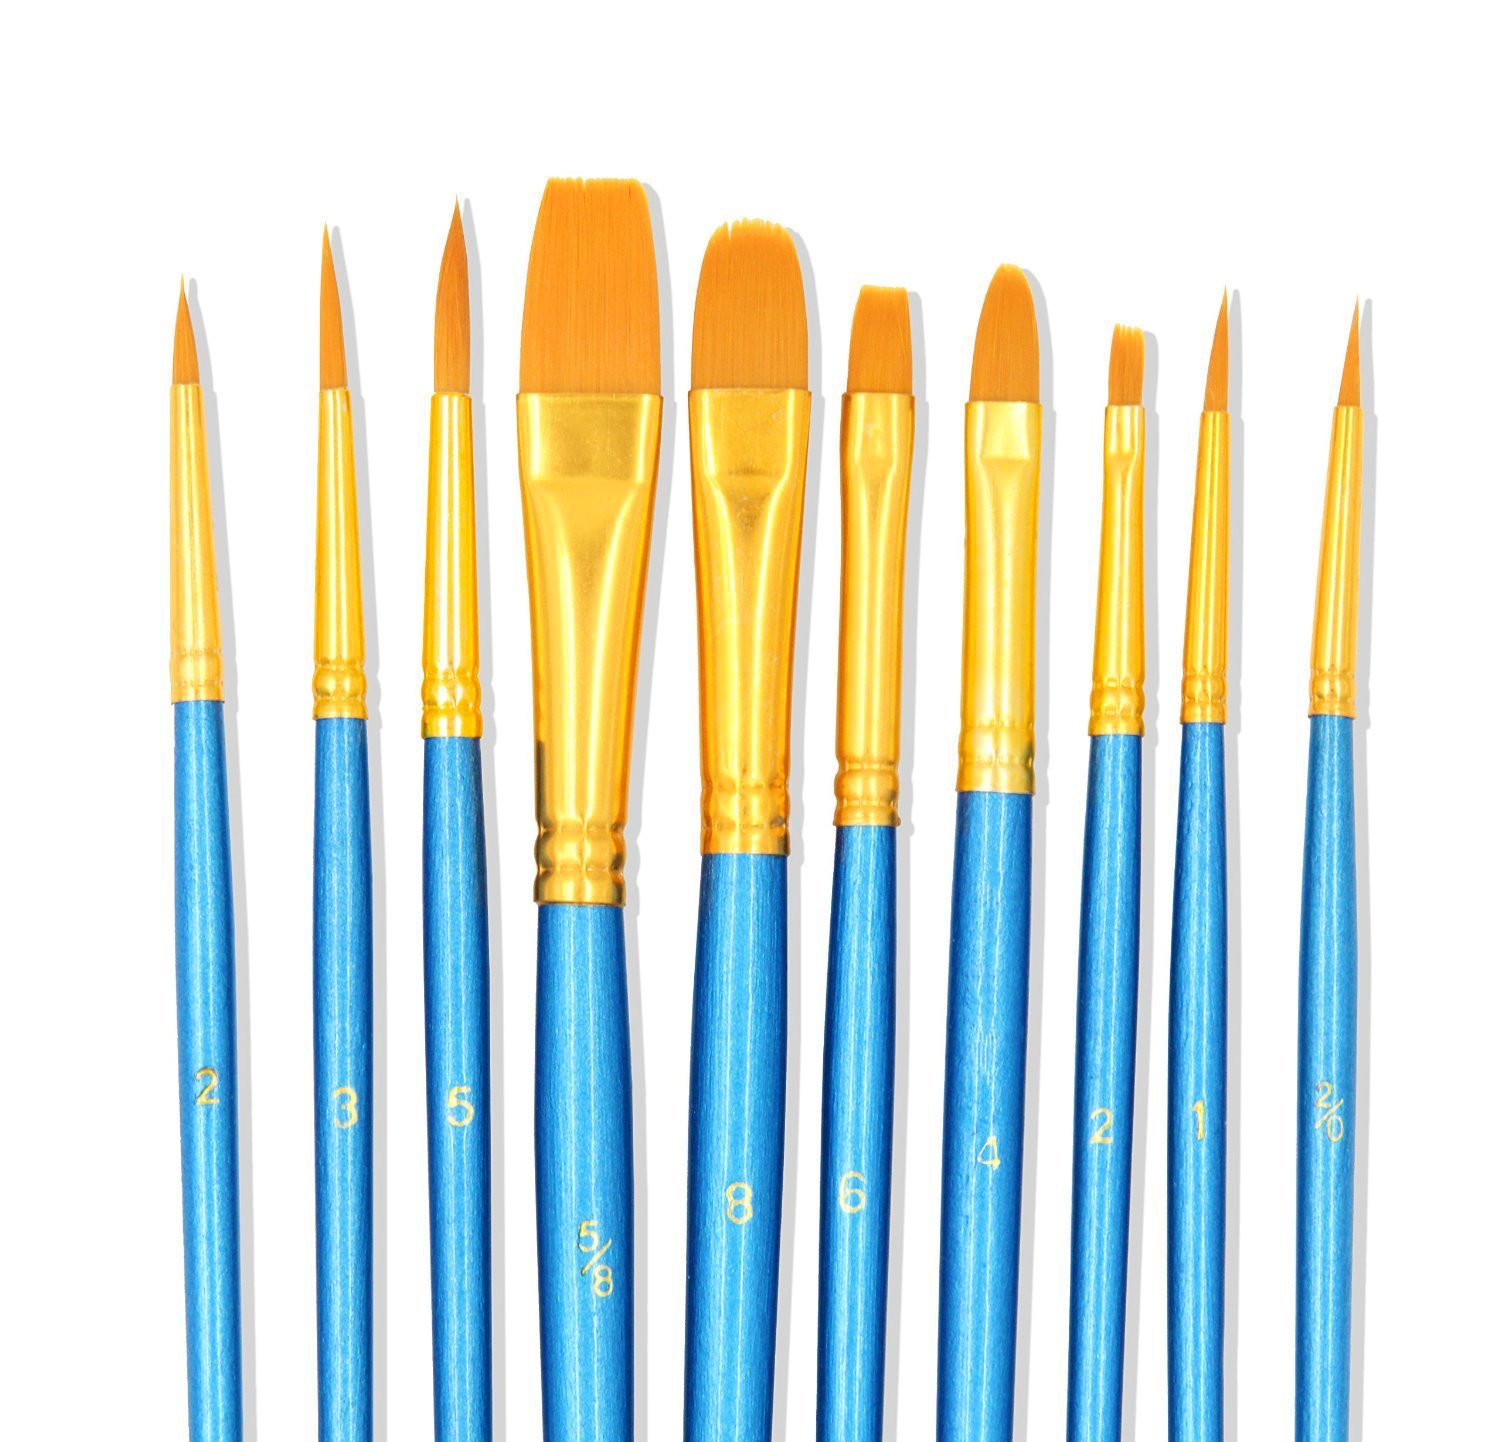 StarVast Painting Brushes, 10pcs Professional Acrylic Paint Brushes Set for Watercolor / Oil / Acrylic / Crafts / Rock / Face Painting and Gouache - Blue